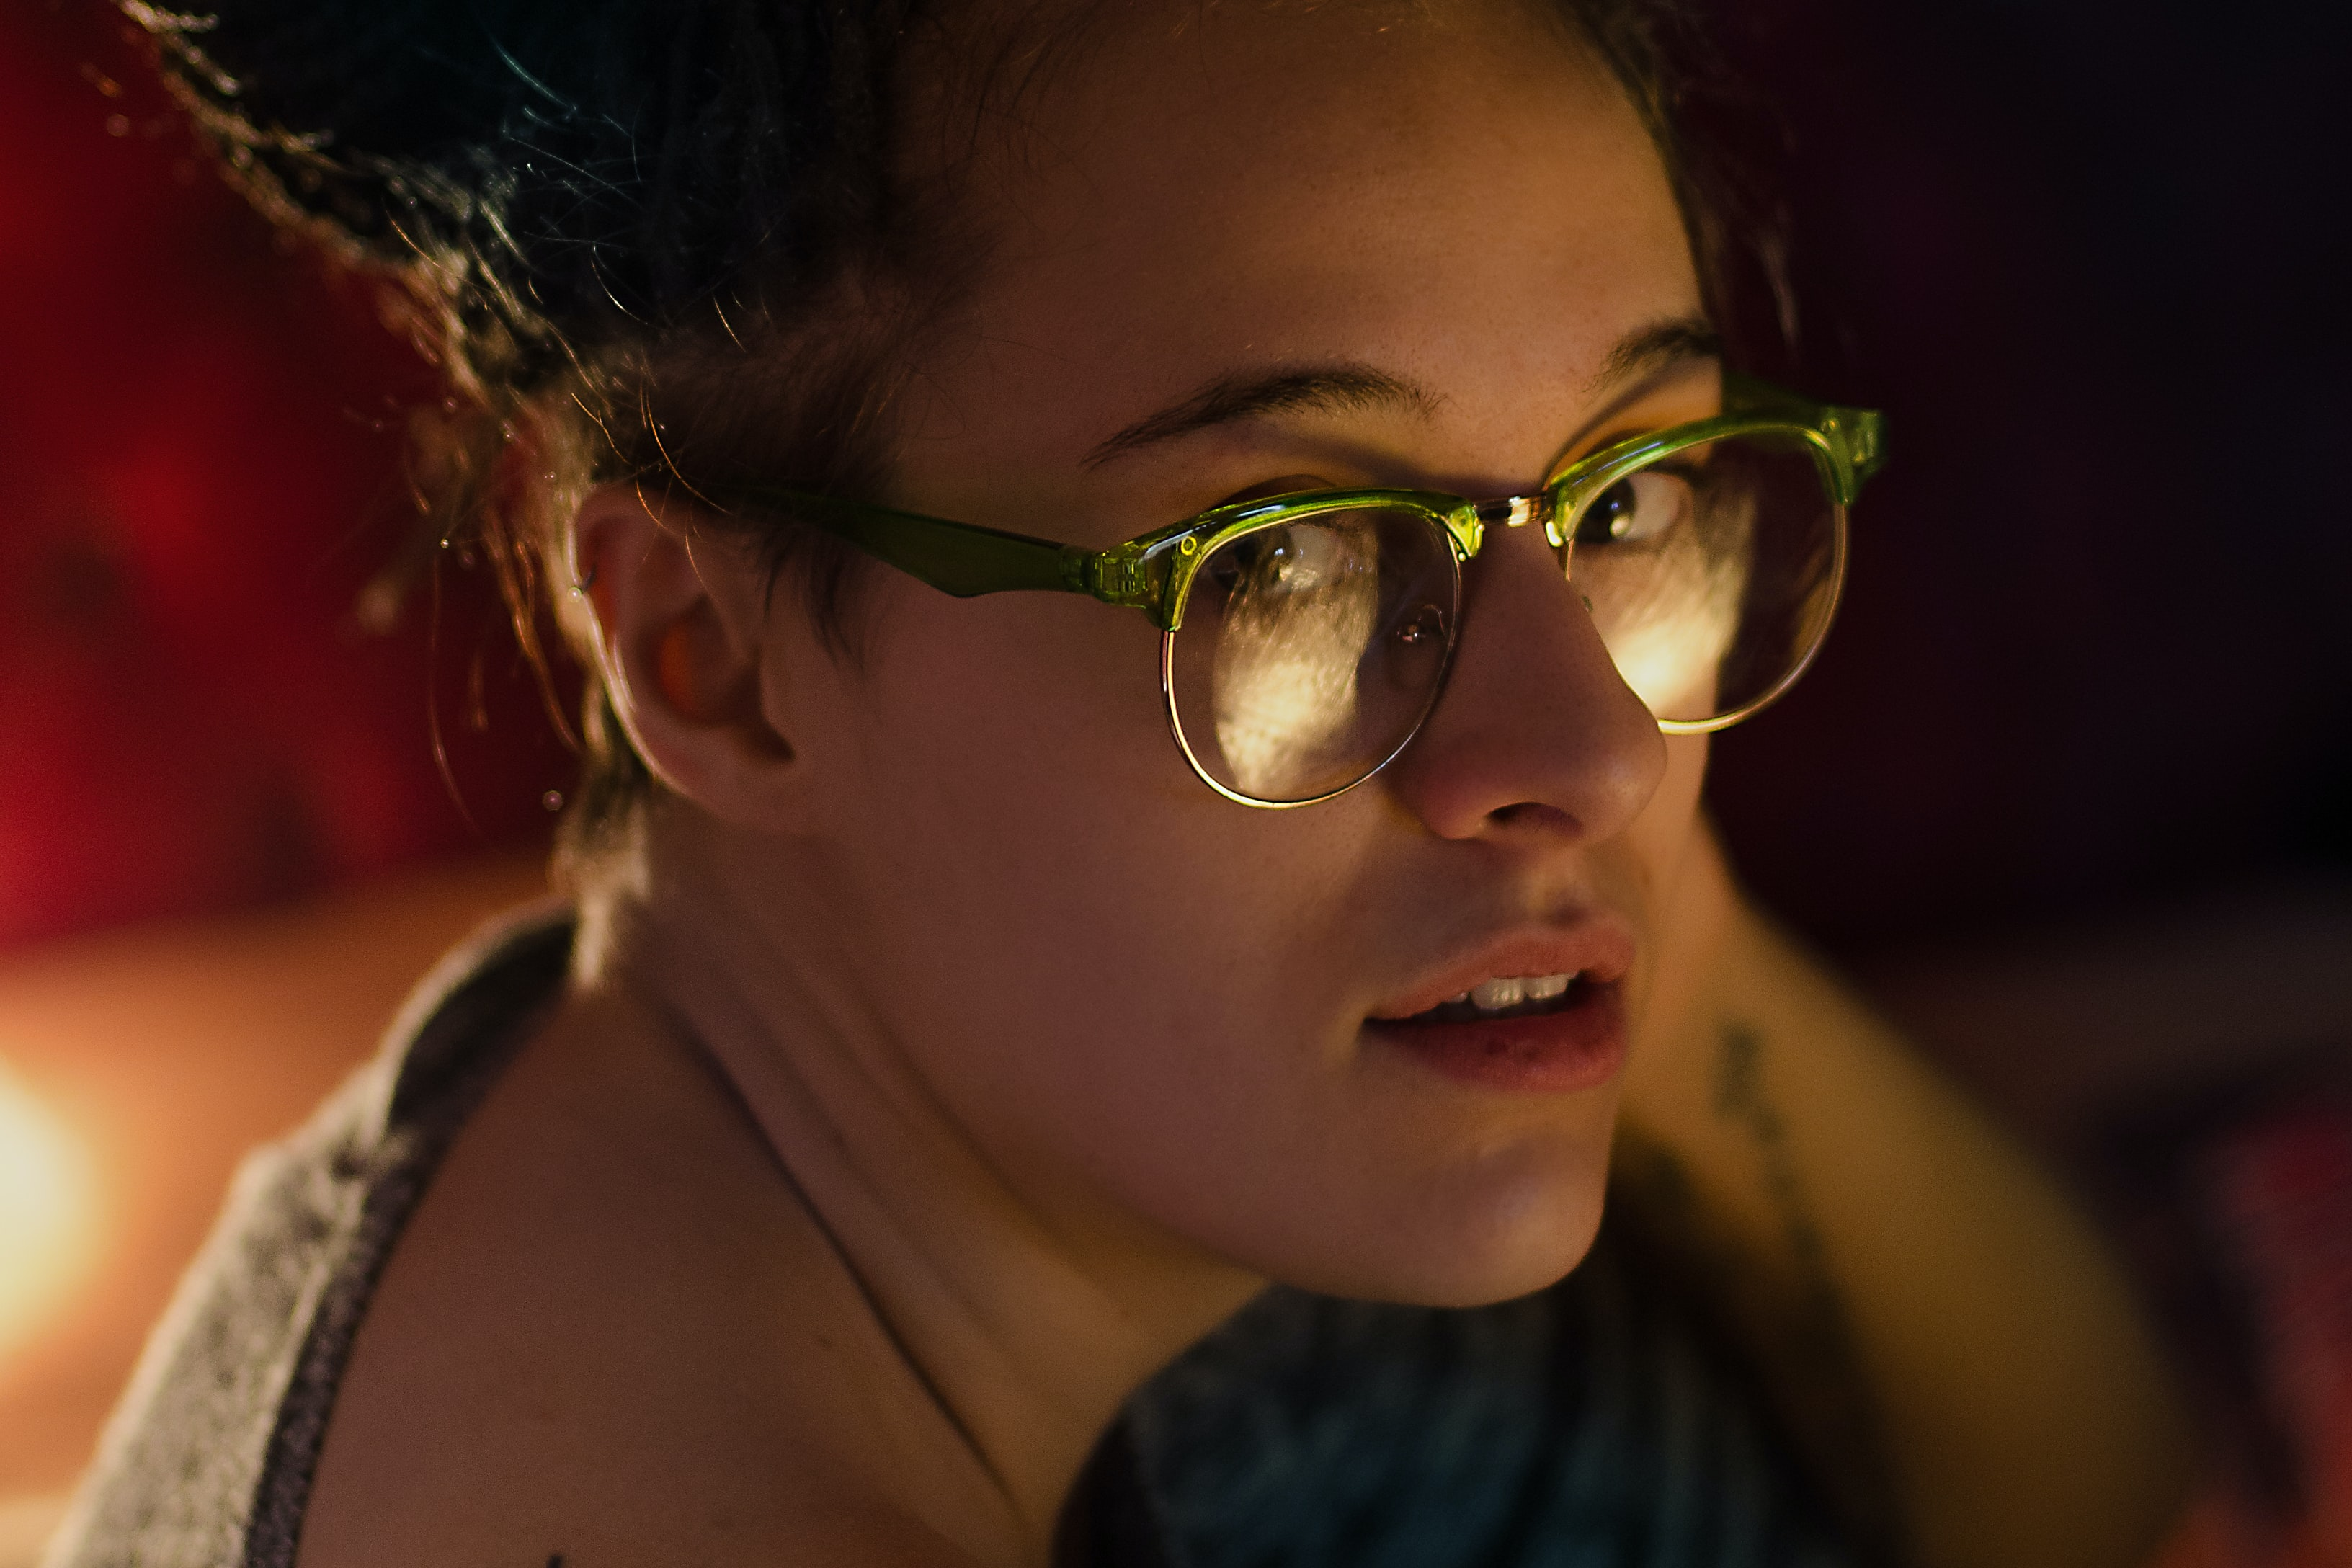 Close-up of a woman in glasses with a tattoo and hair up looking toward the camera